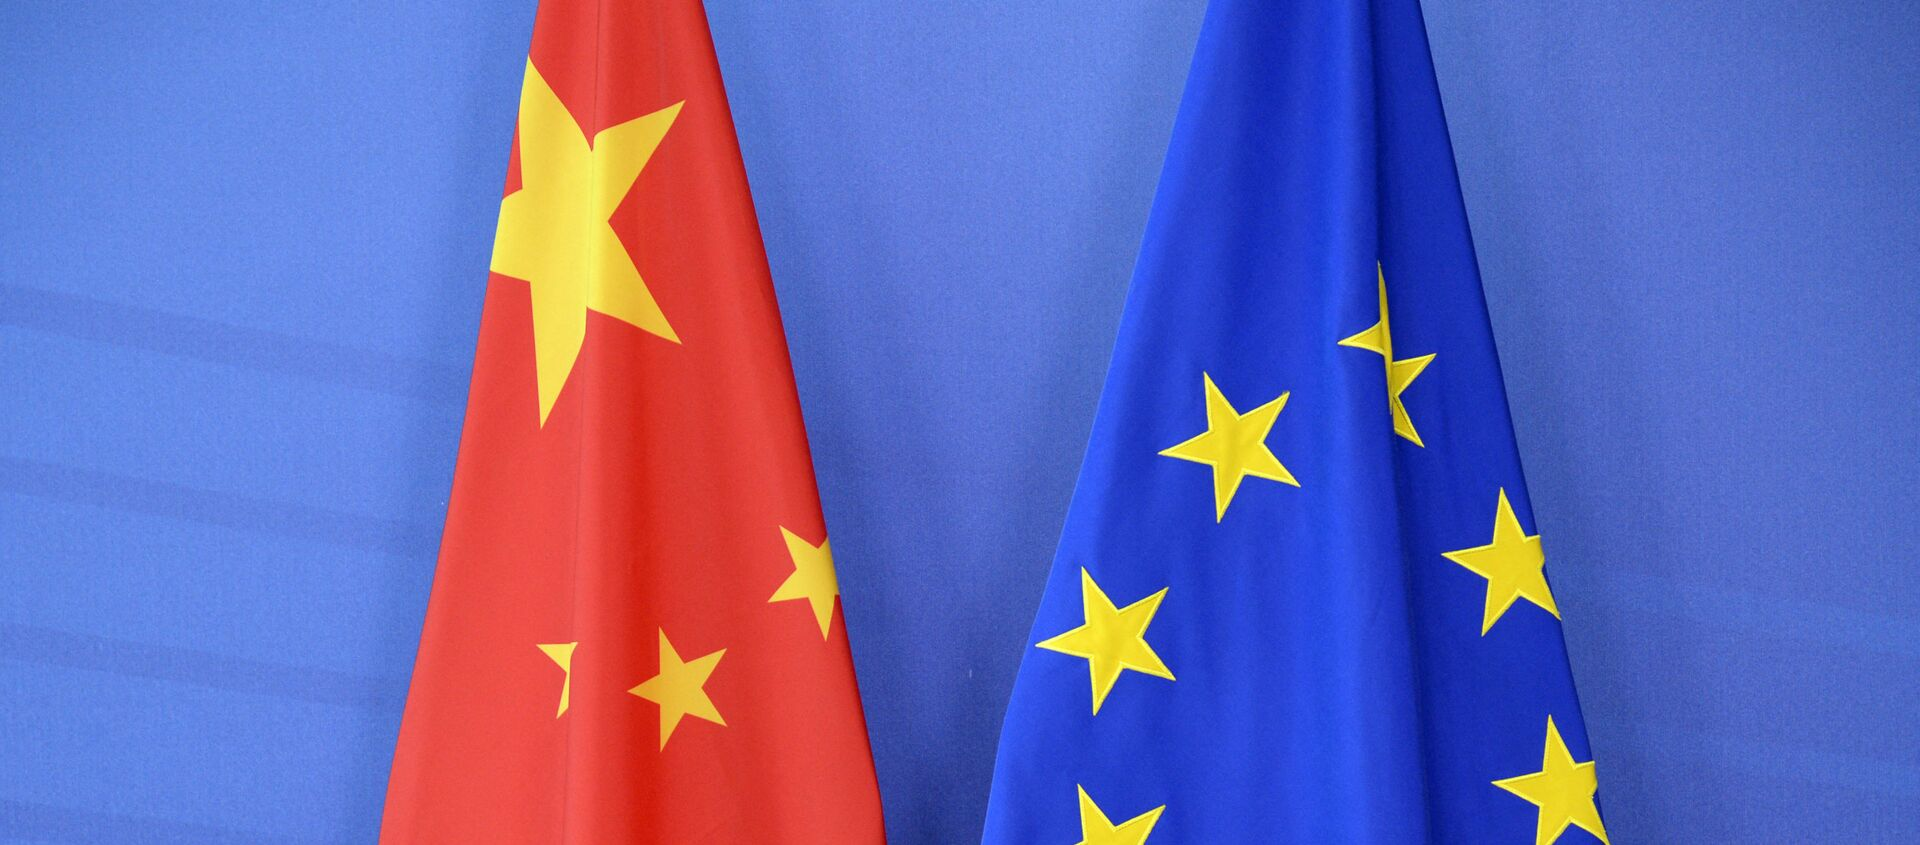 The Chinese flag(L) is draped beside the European Union (EU) during an EU- China Summit at the European Union Commission headquarters in Brussels on June 29, 2015 - Sputnik International, 1920, 20.05.2021